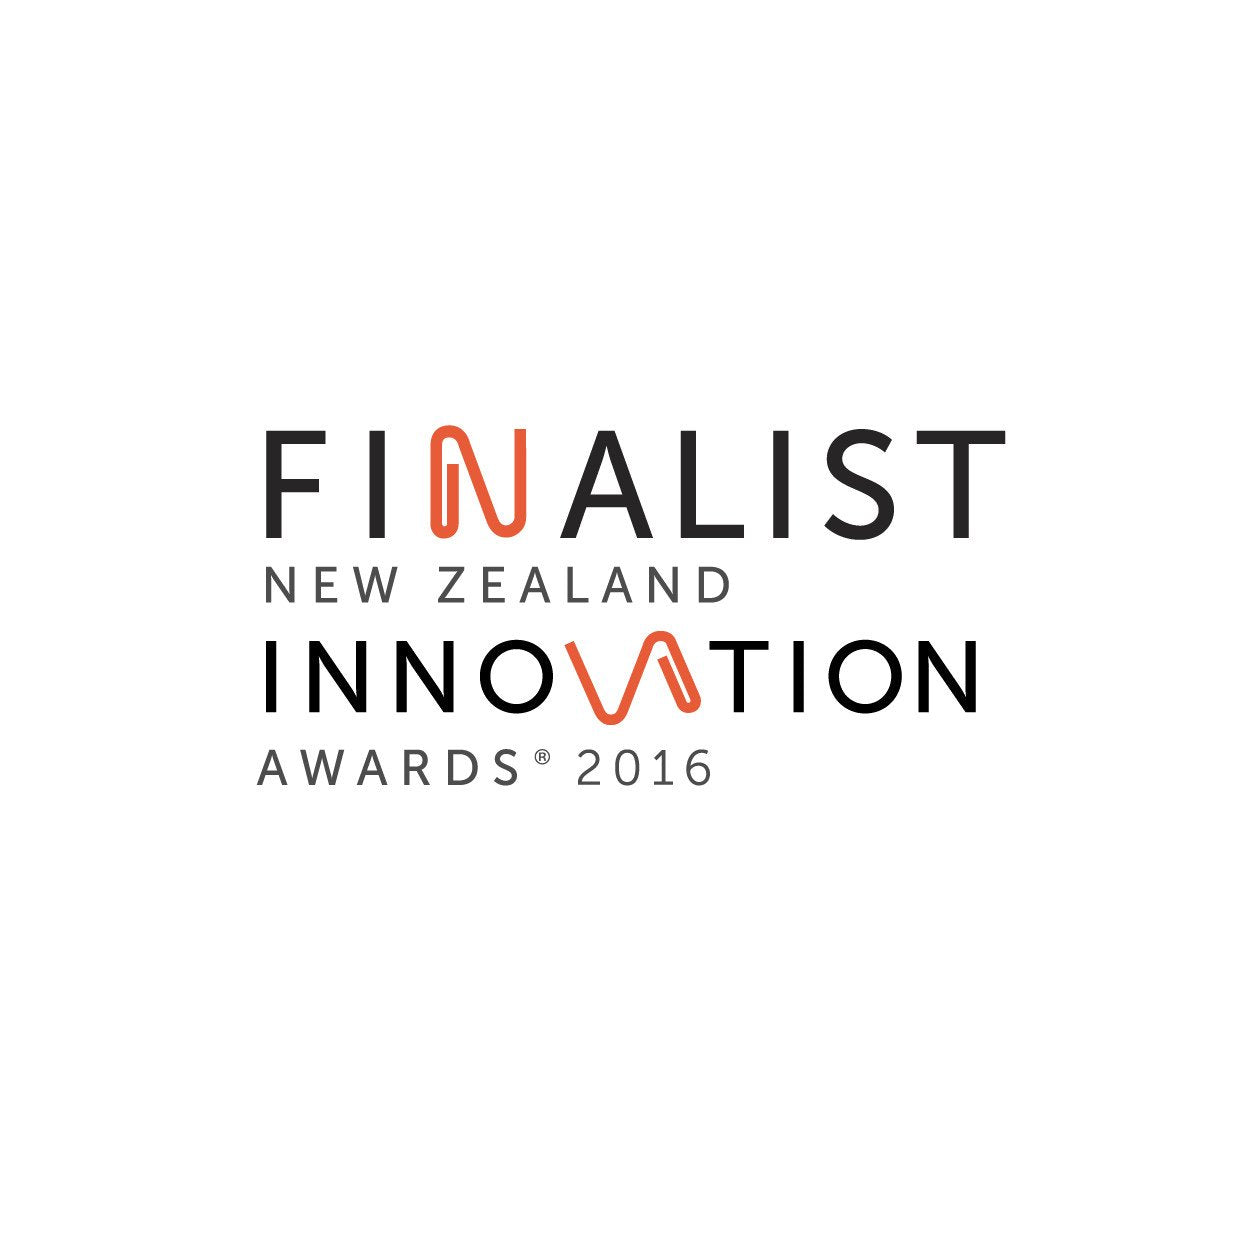 2016 New Zealand Innovation Awards